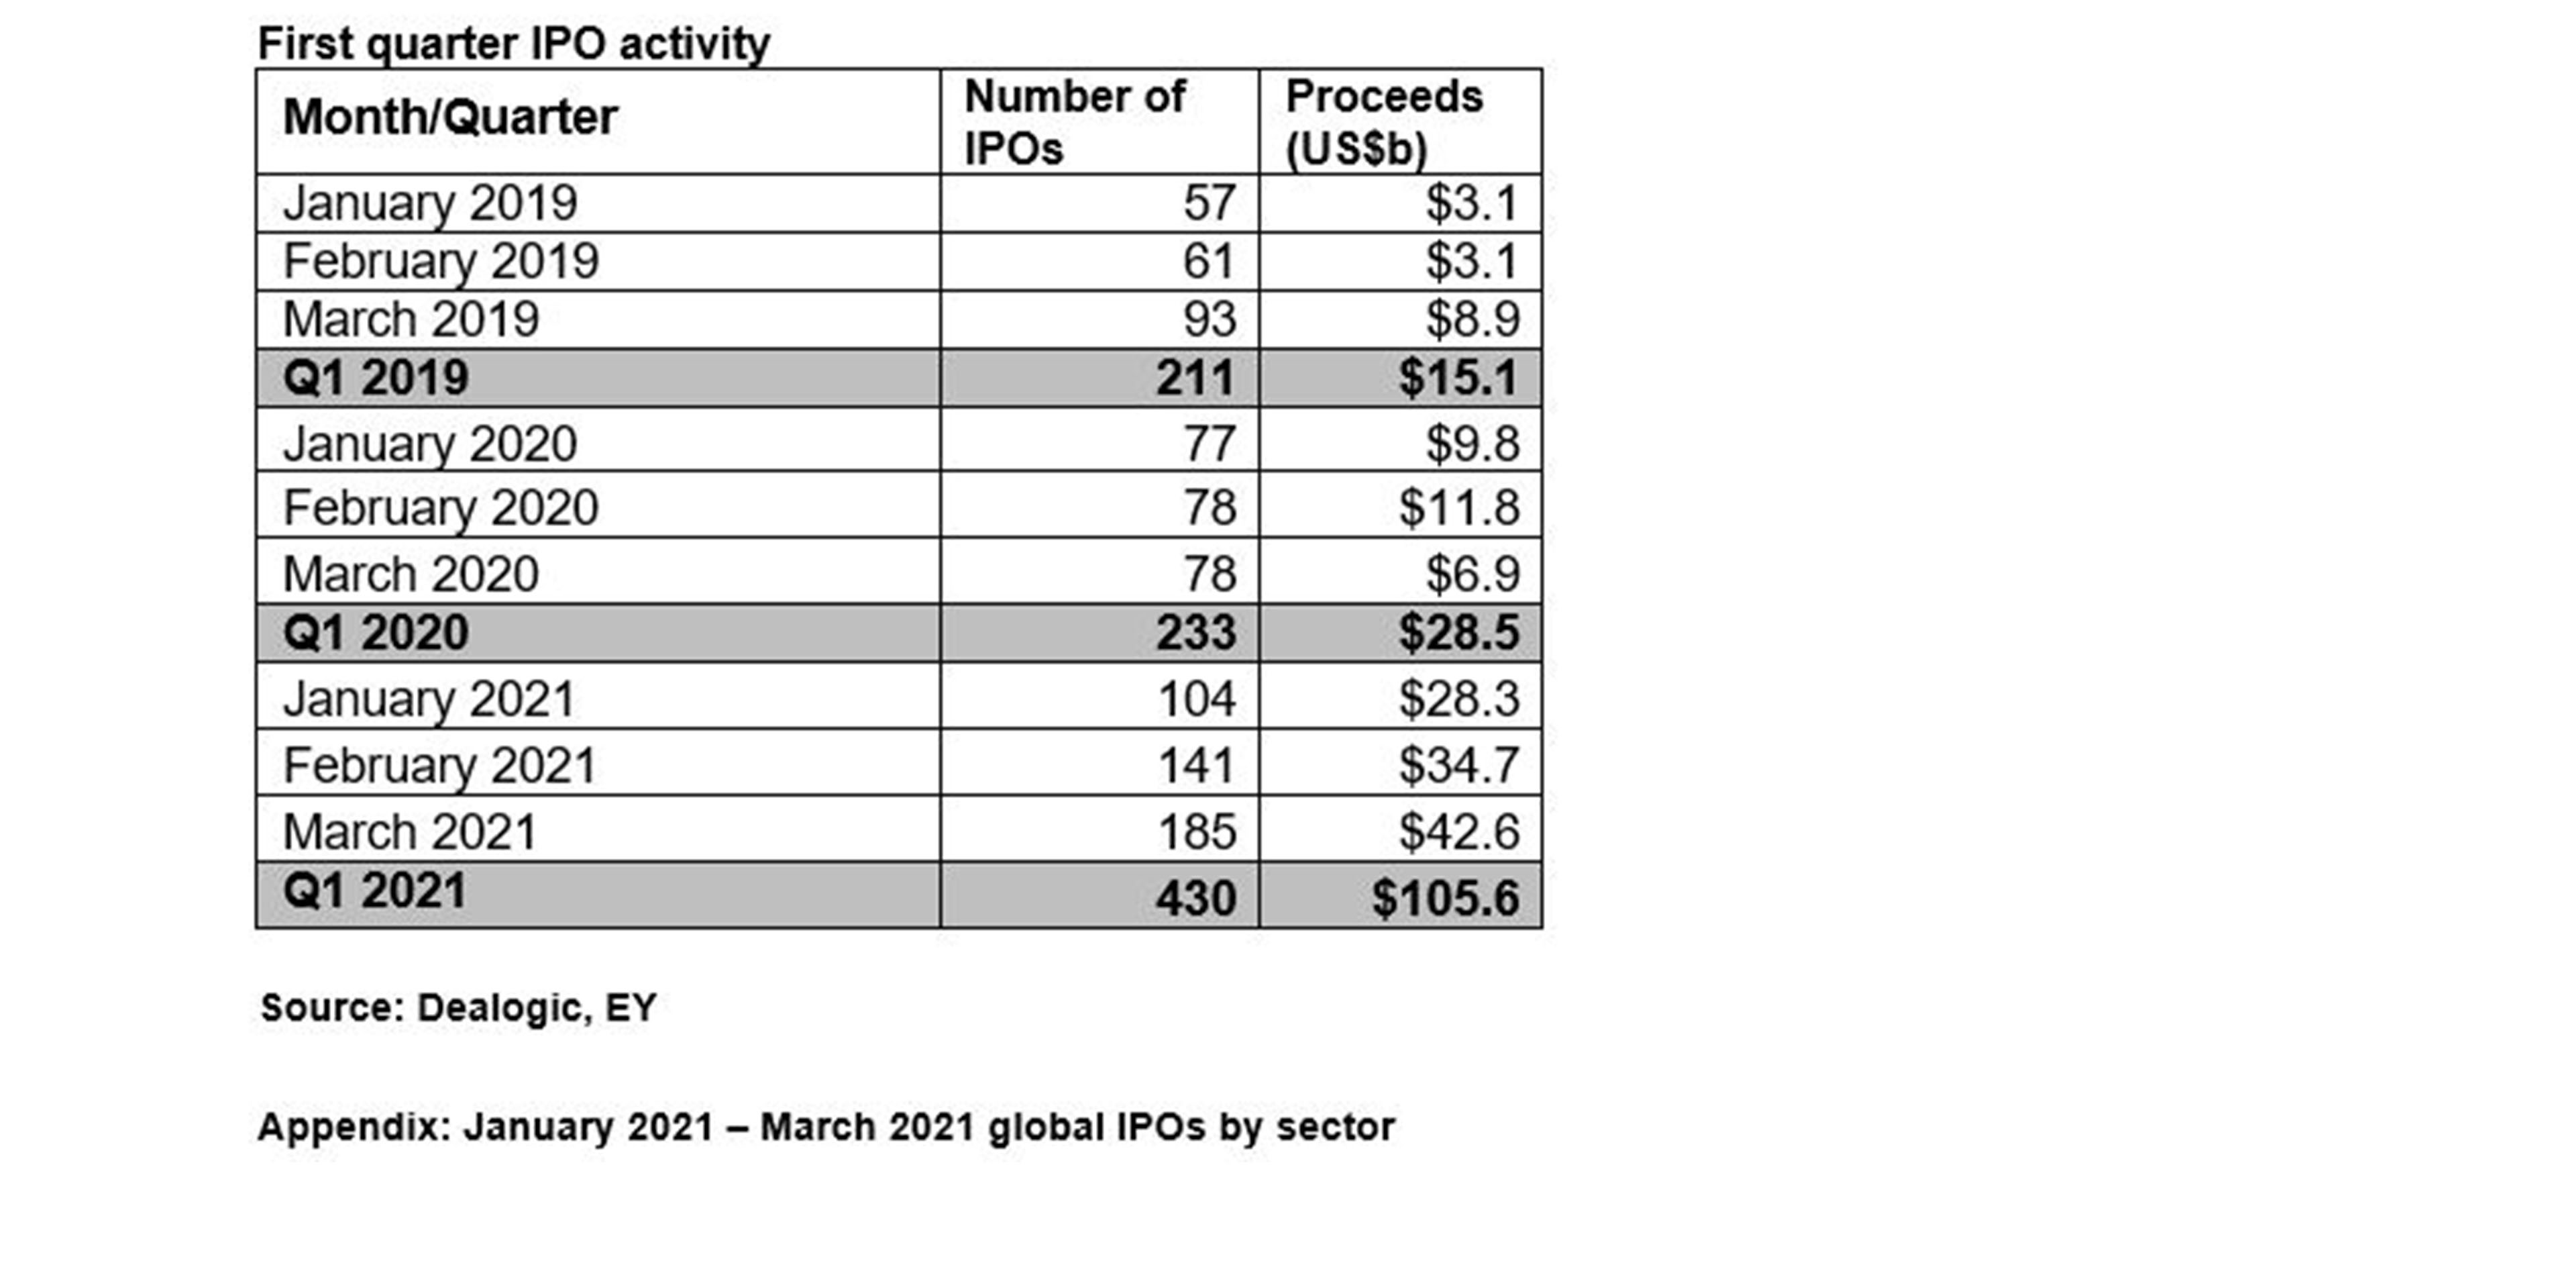 First quarter IPO activity